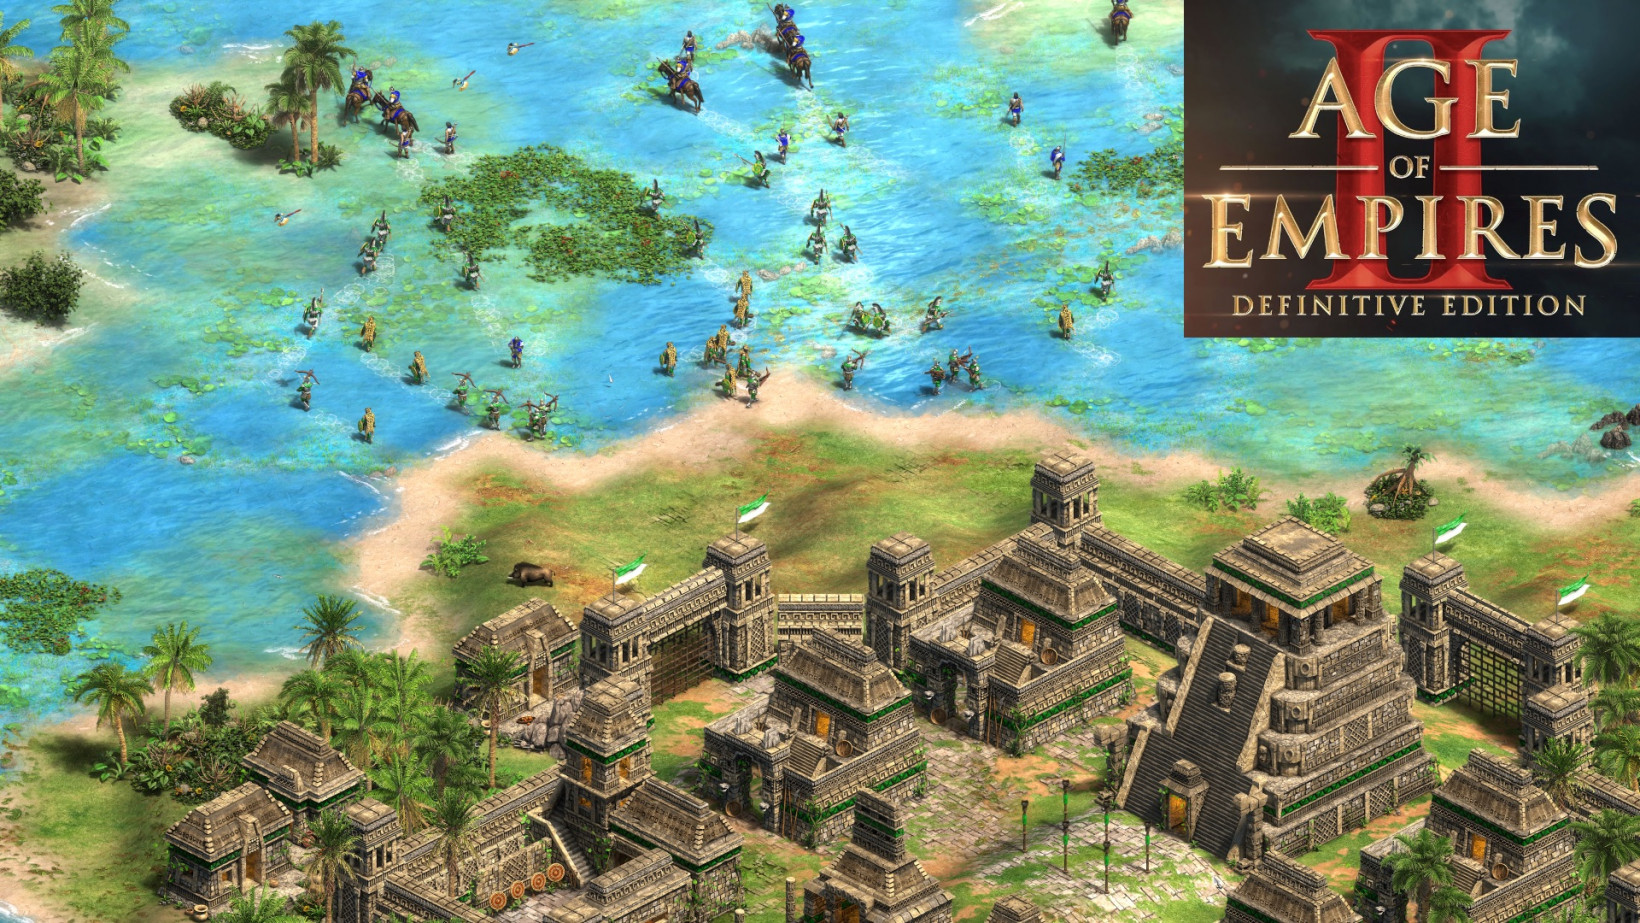 Age Of Empires Ii Definitive Edition Is Arriving On November 14 In 4k